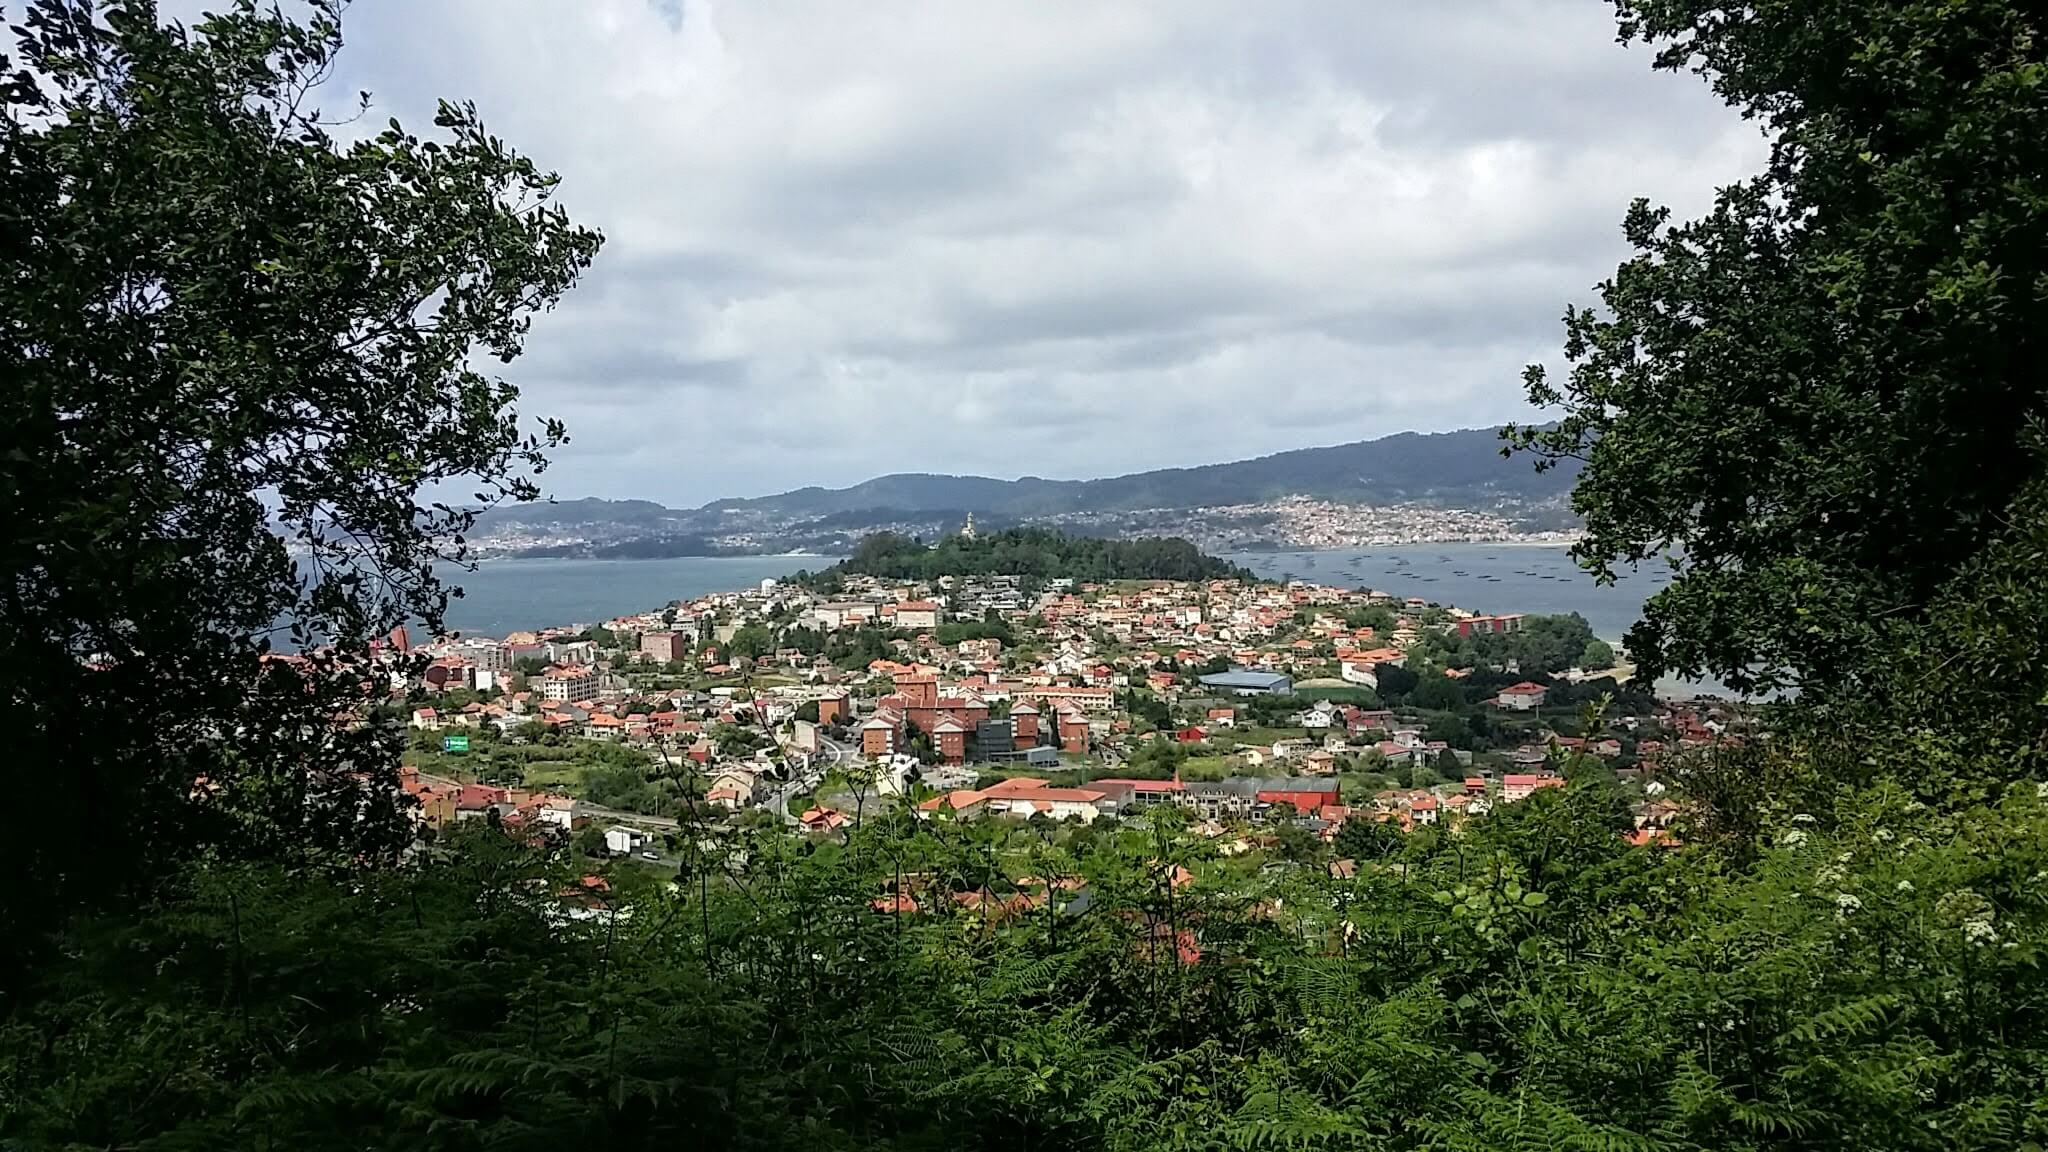 Glimpses of the Bay of the Ría de Vigo on day twenty-one of the Camino Portugués